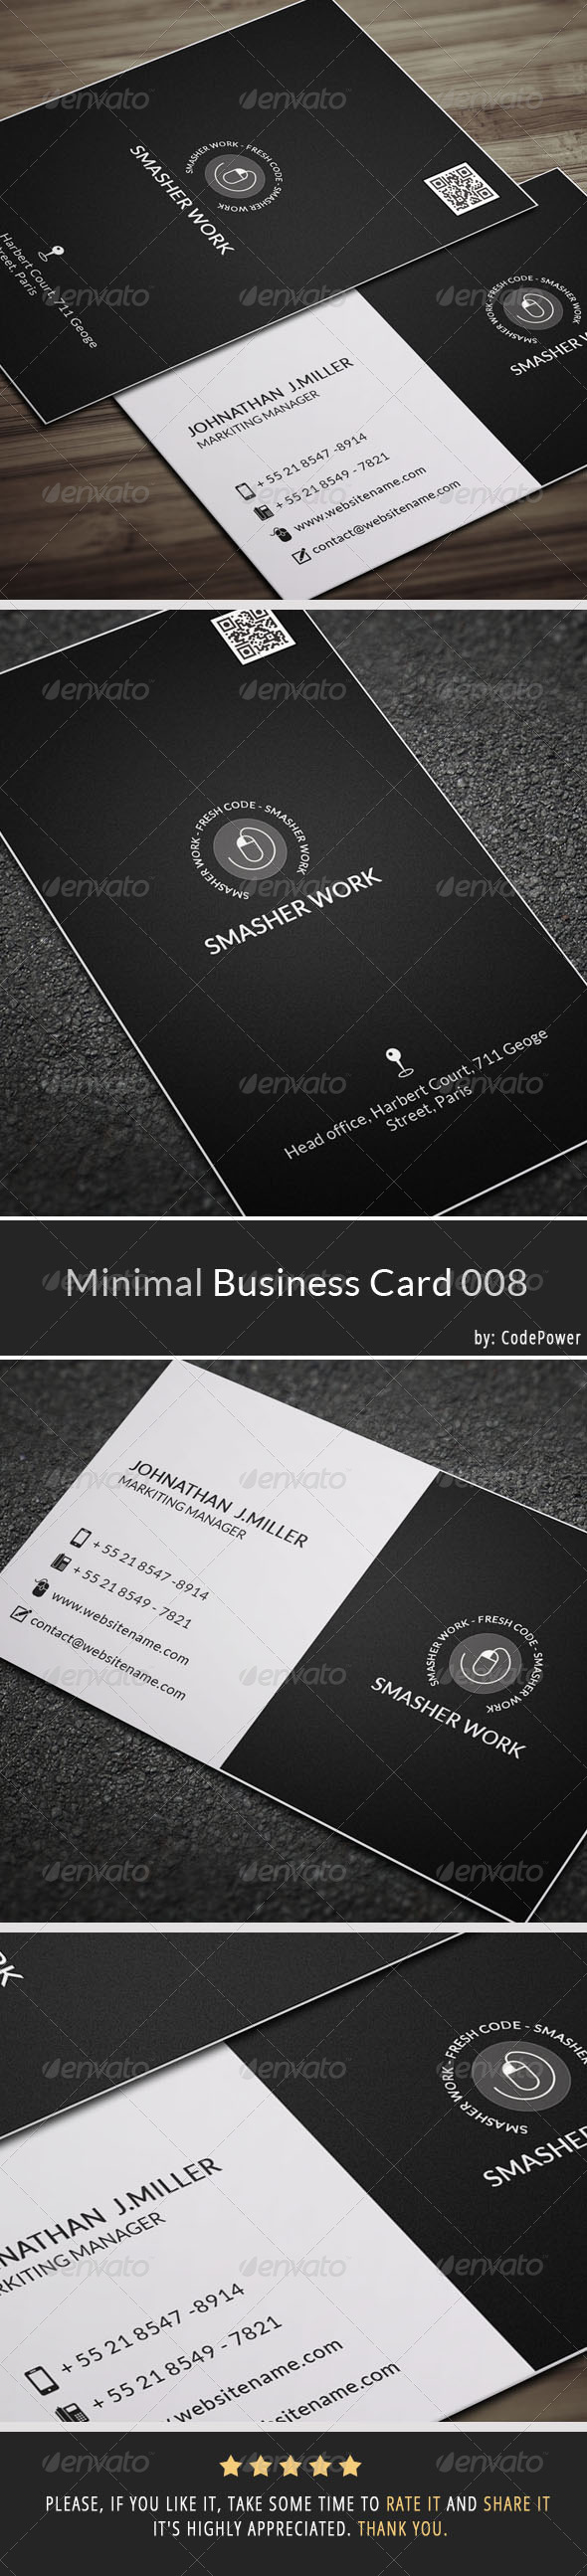 GraphicRiver Minimal Business Card 008 7320562